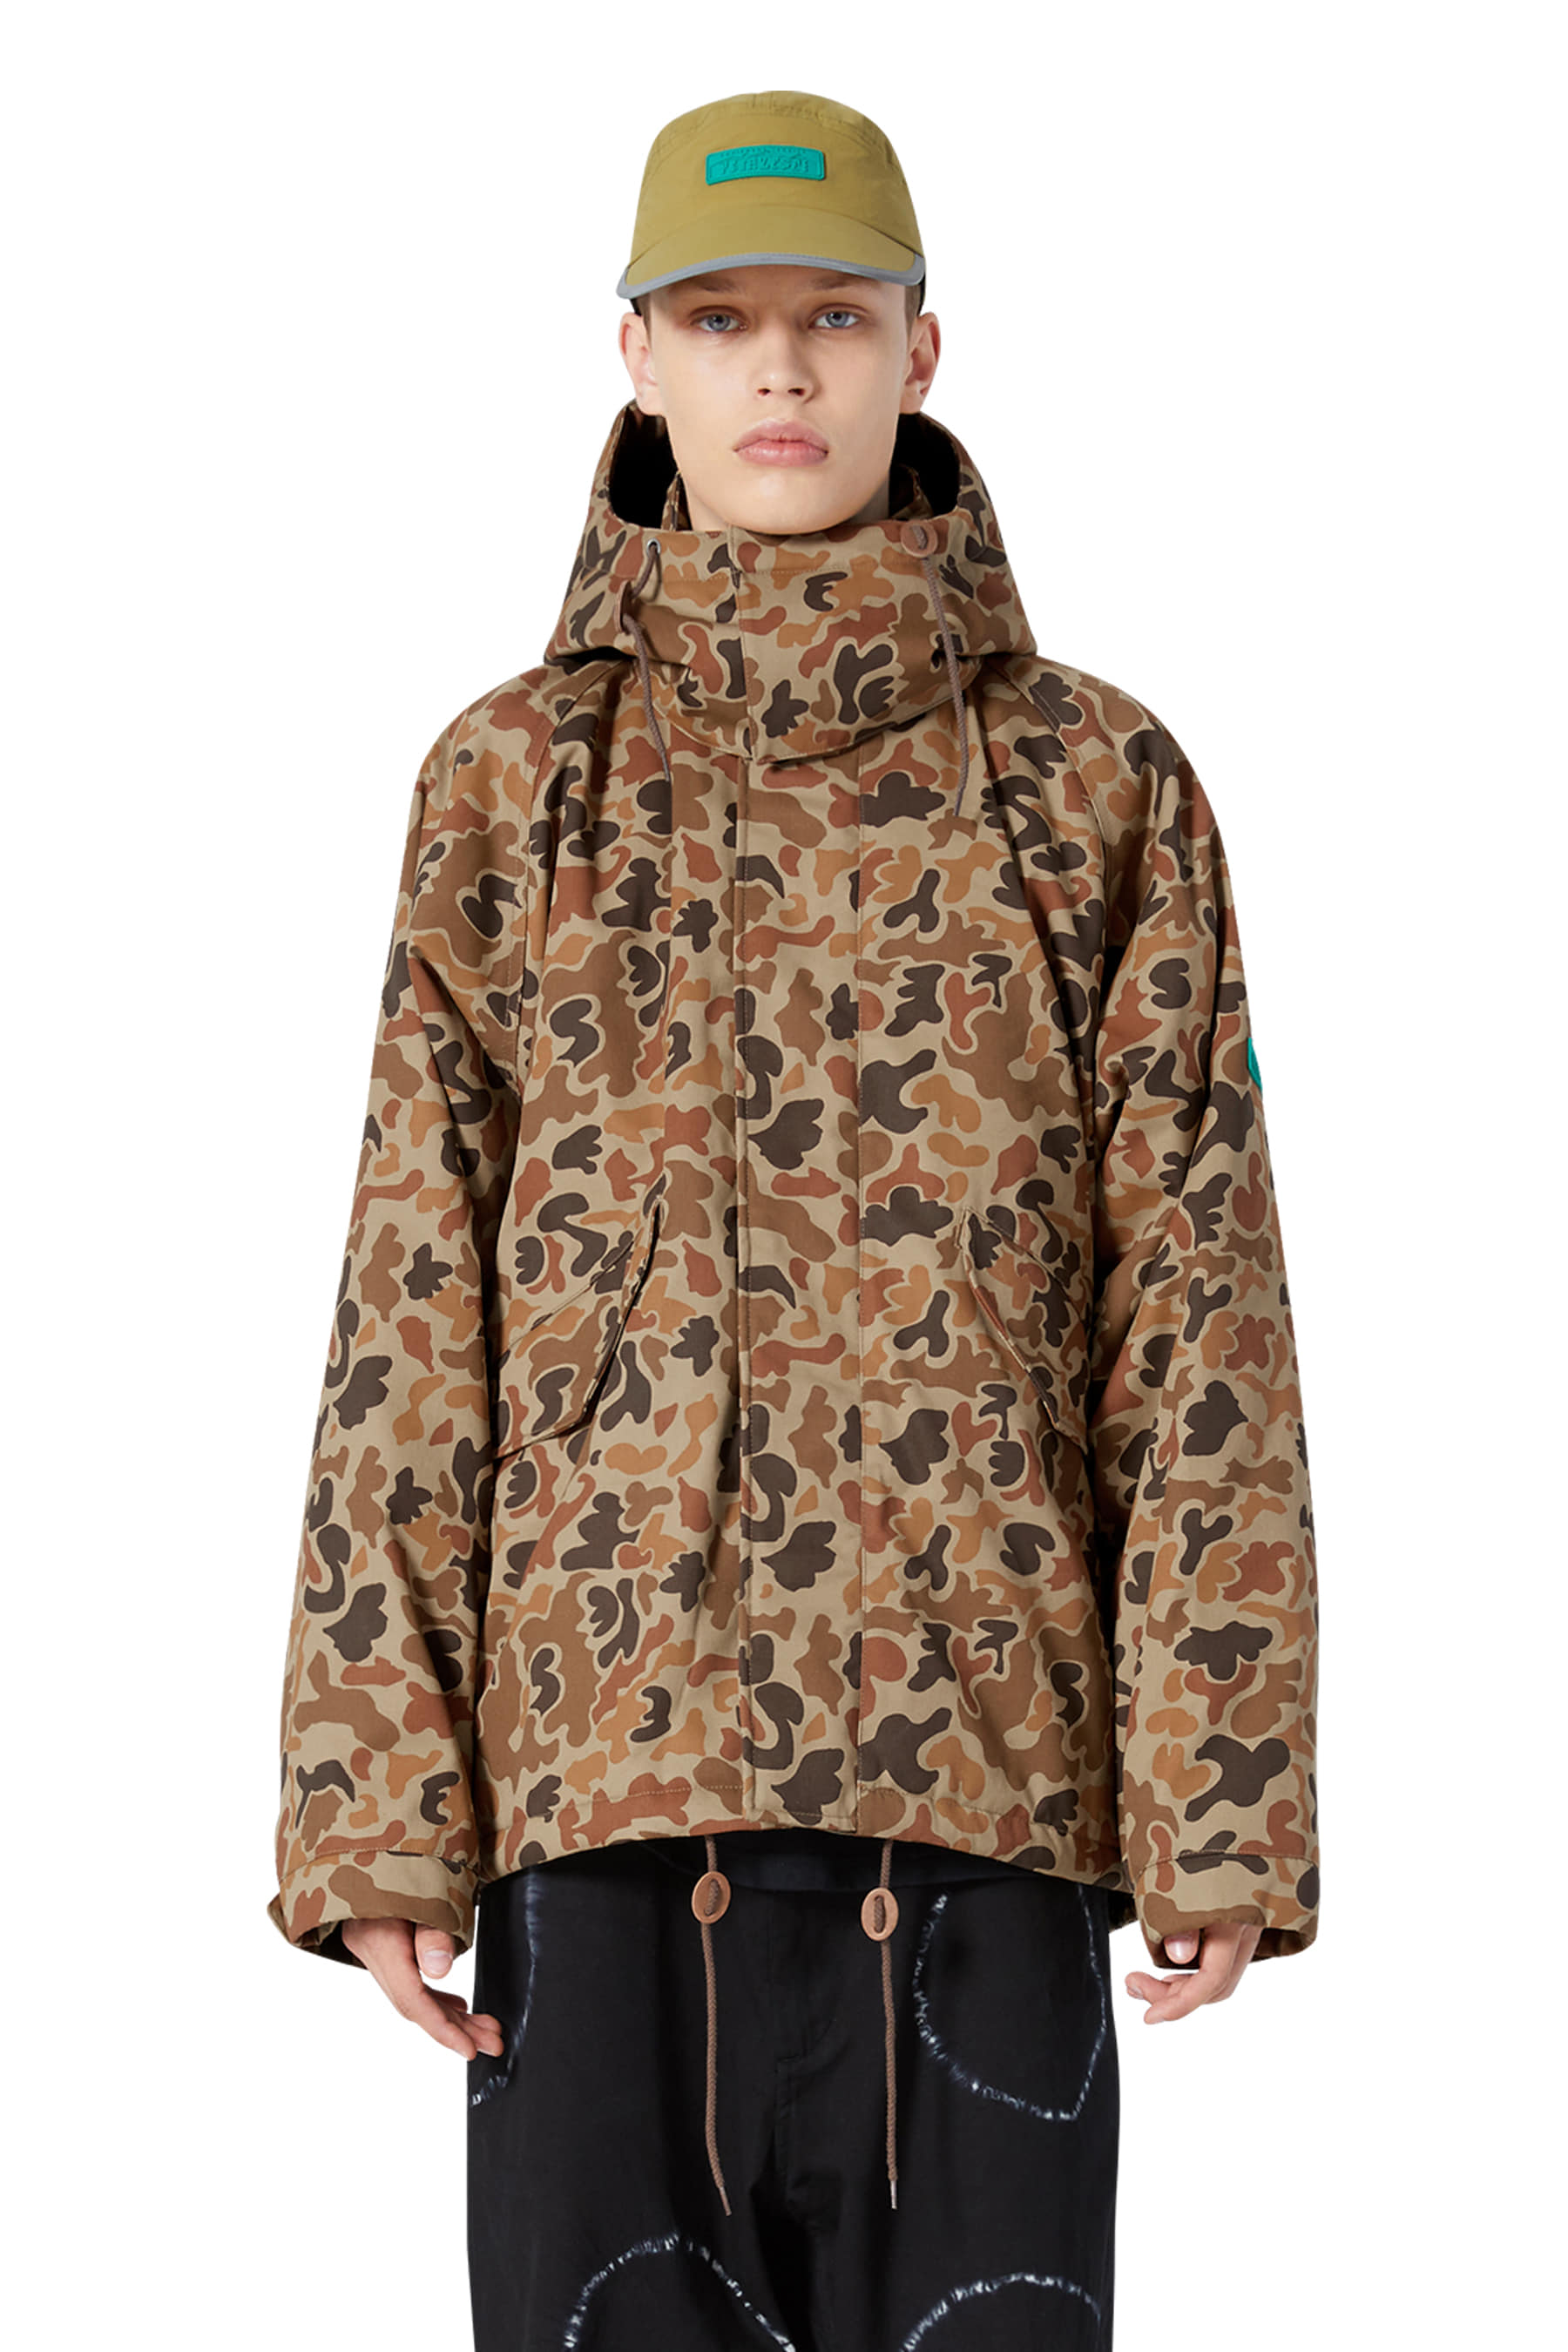 Y.E.S Jungle Jacket Desert